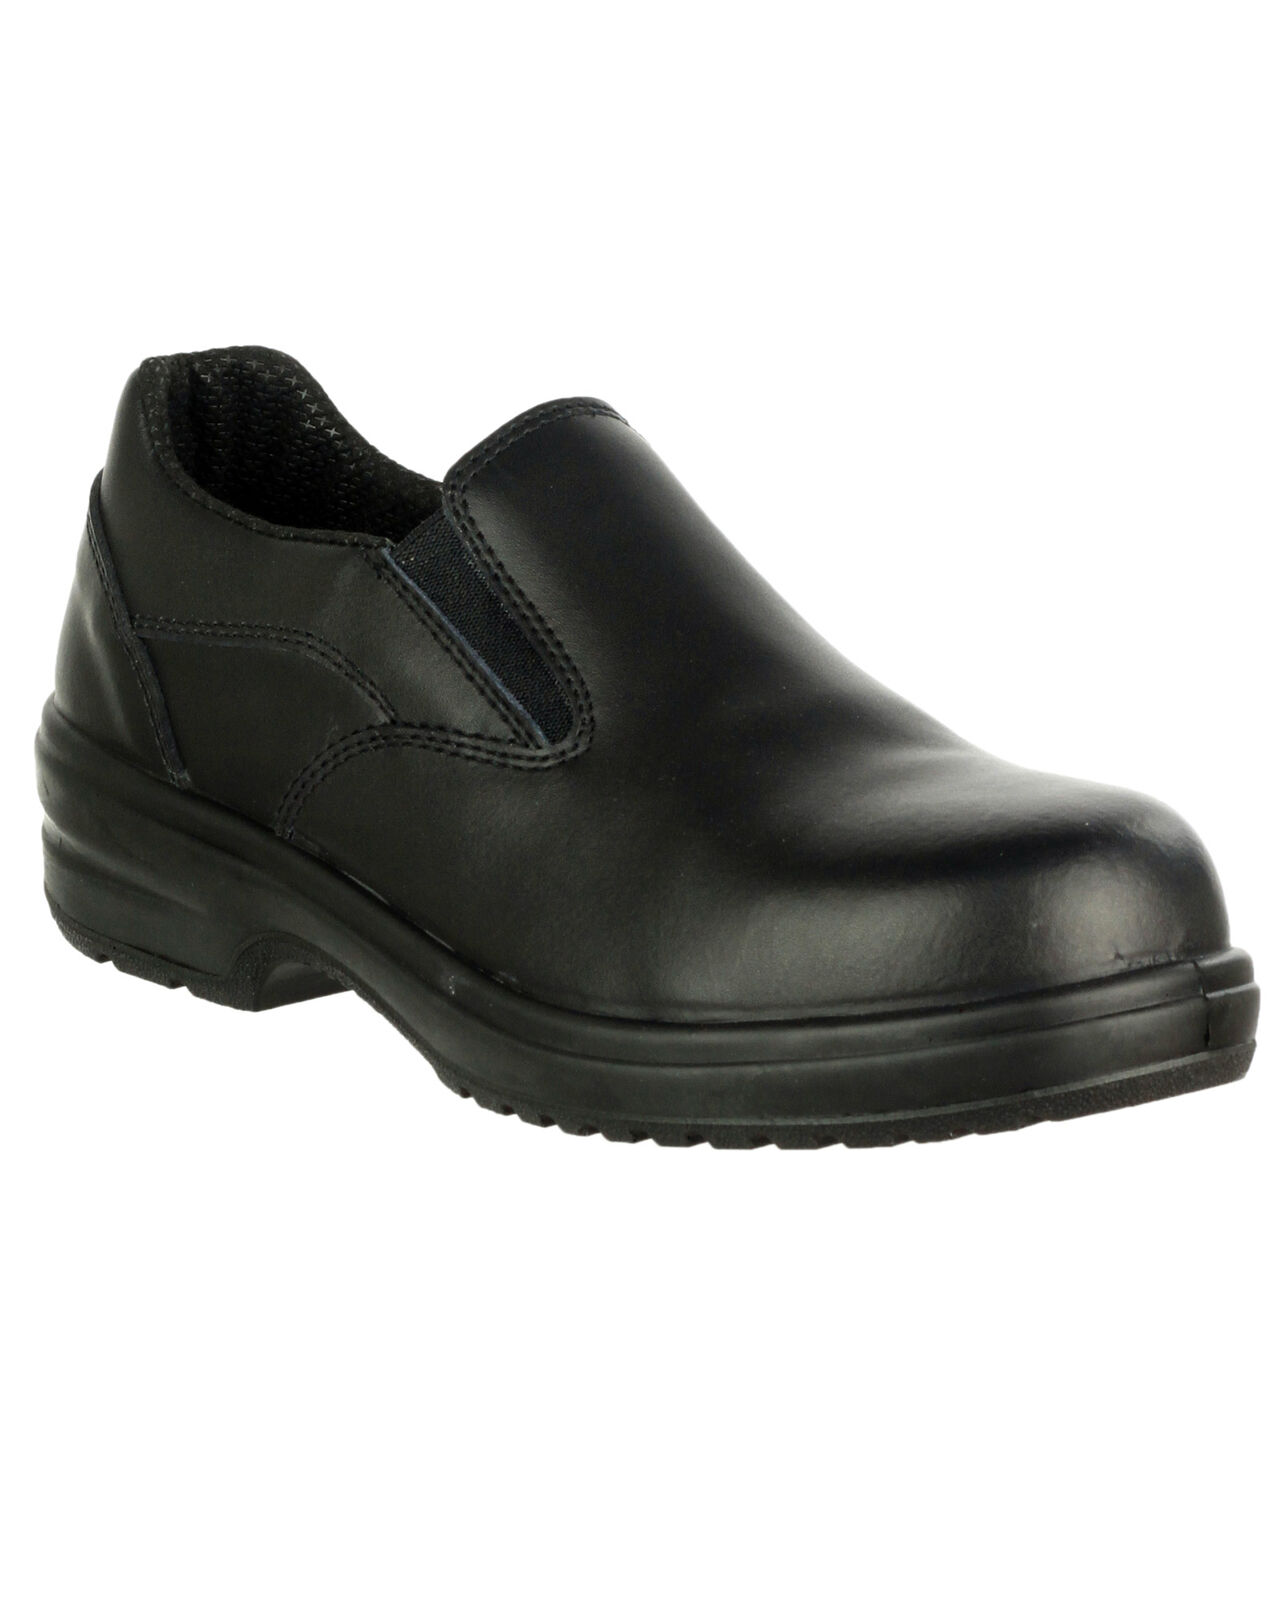 Amblers Composite Ladies Slip On Safety shoes–FS94C(Safety  S1-P - SRC)–20445